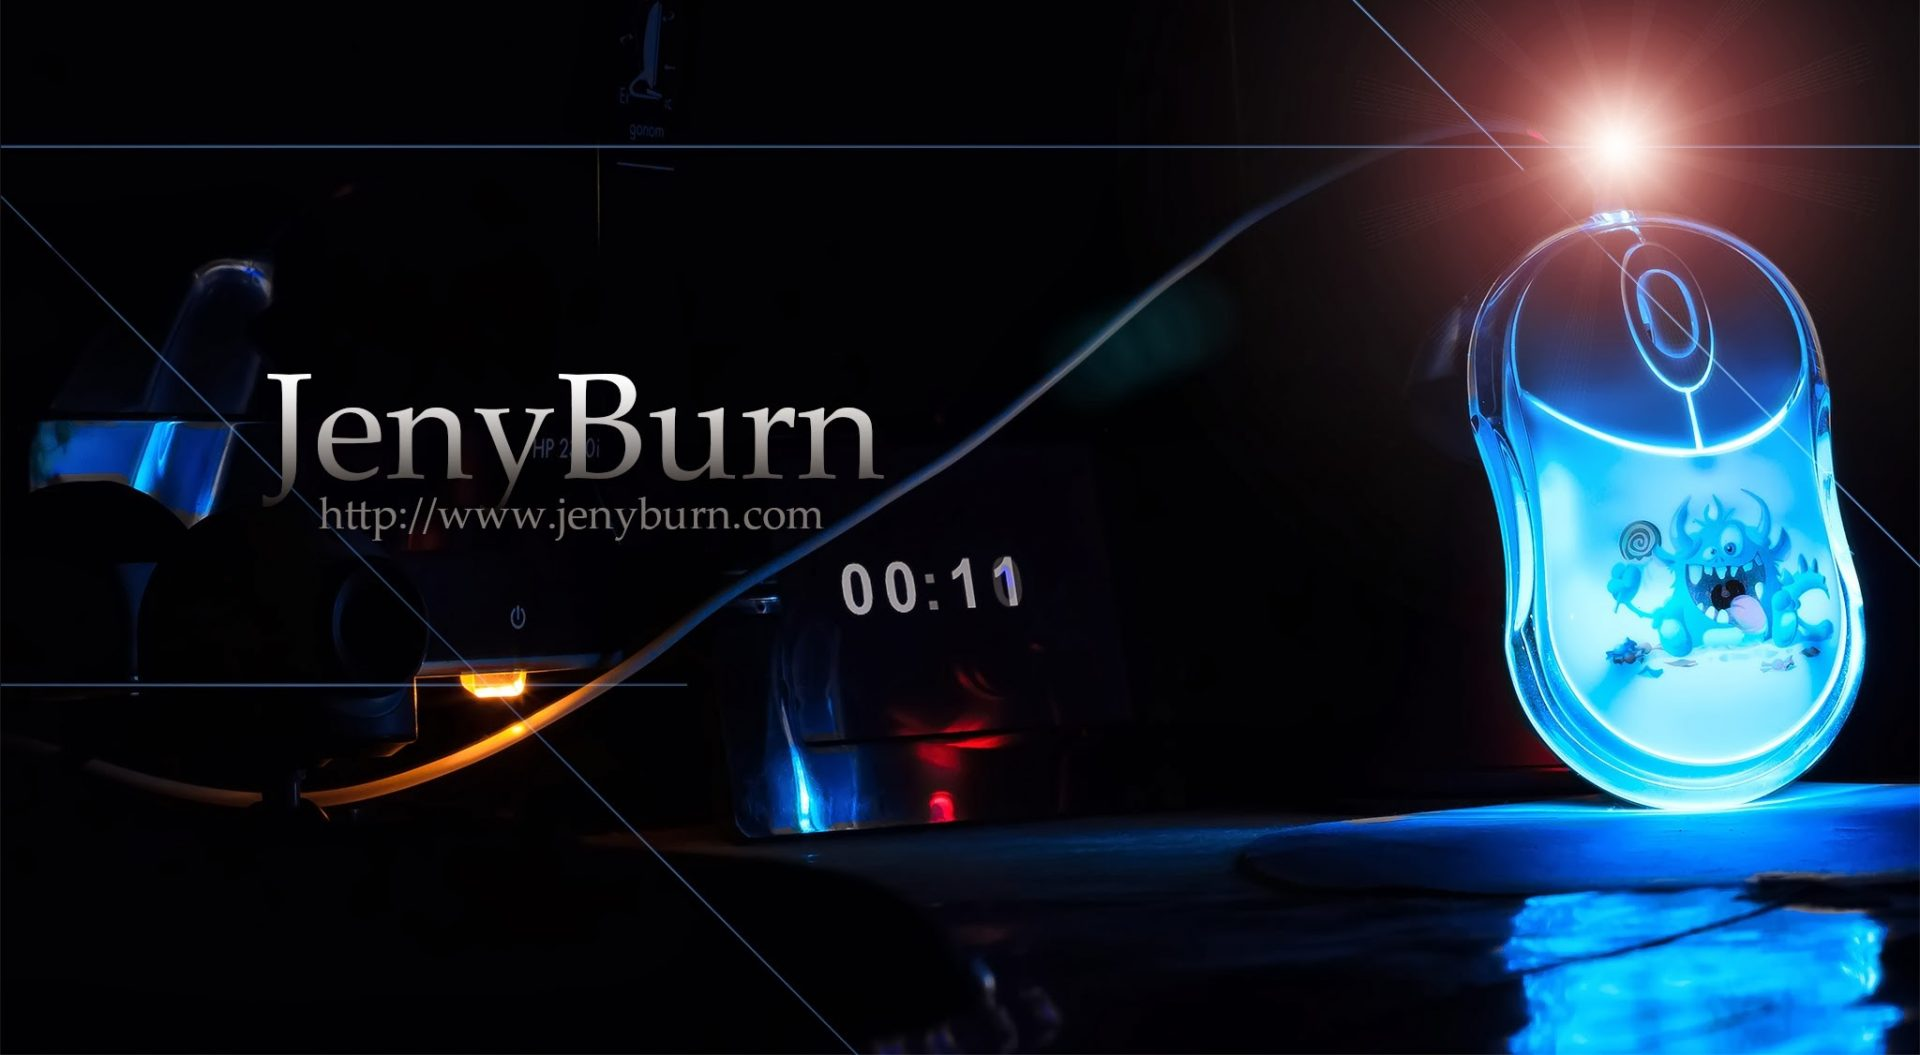 Jeny Burn - Informasi dan Software Operating System Windows